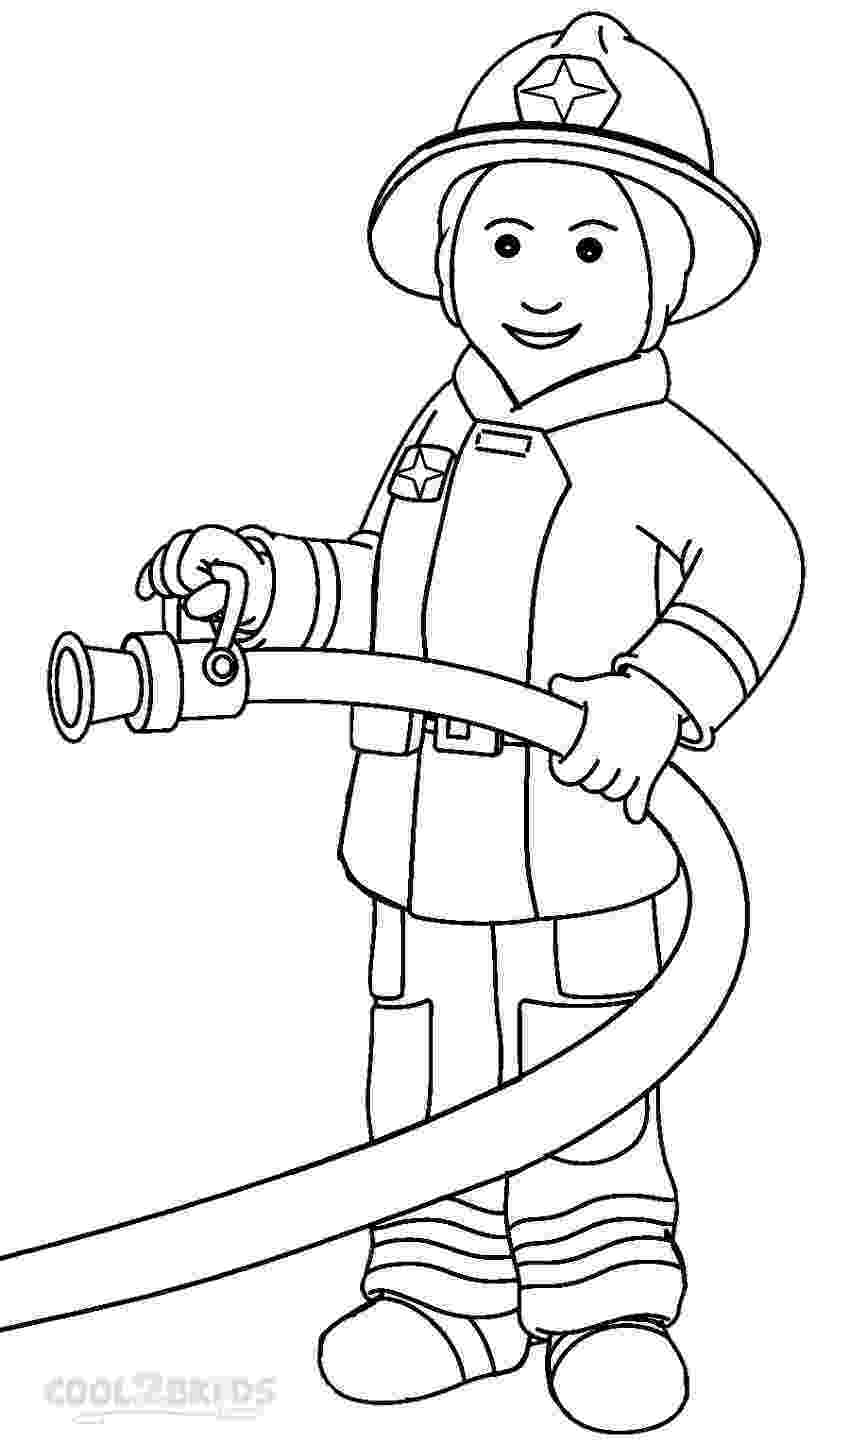 fire fighting coloring pages fire fighting drawing at getdrawingscom free for fighting coloring pages fire